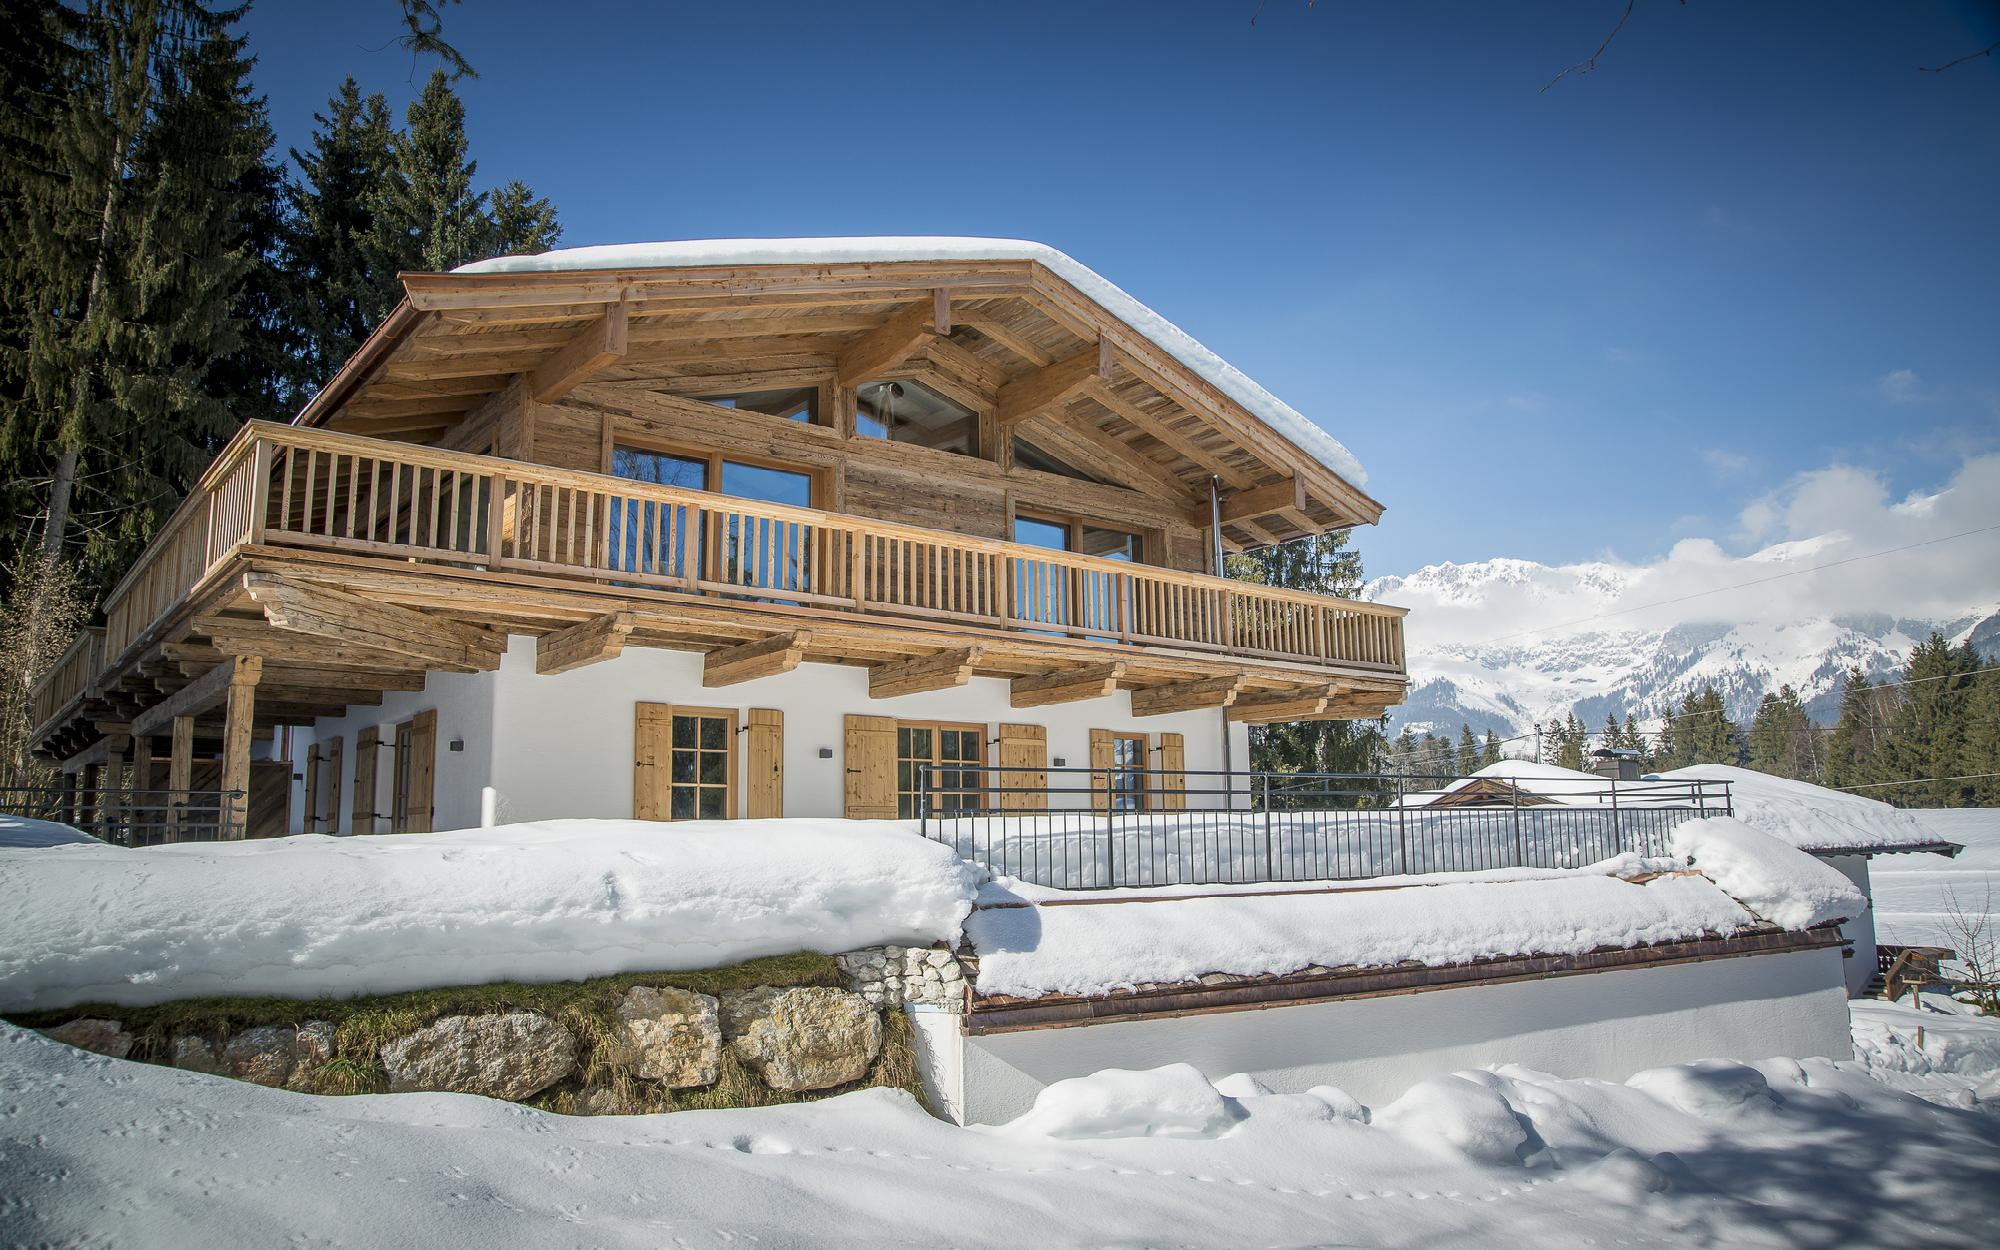 Newly built semi-detached house in Ellmau For Sale - Austria - Tirol